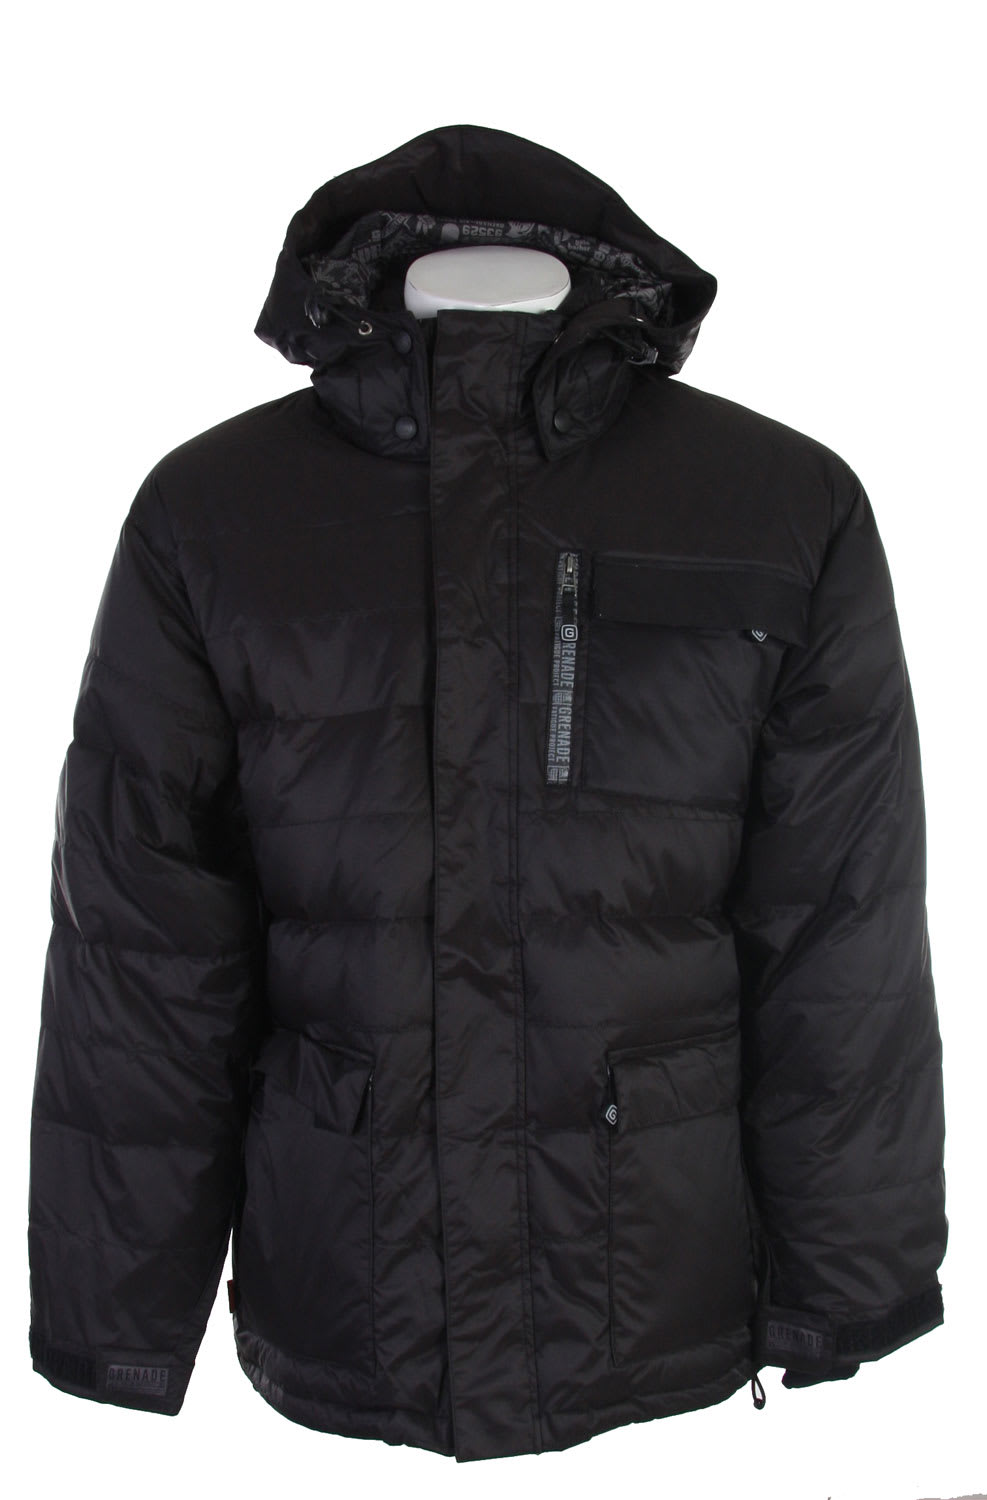 Shop for Grenade Southface Snowboard Jacket Black - Men's